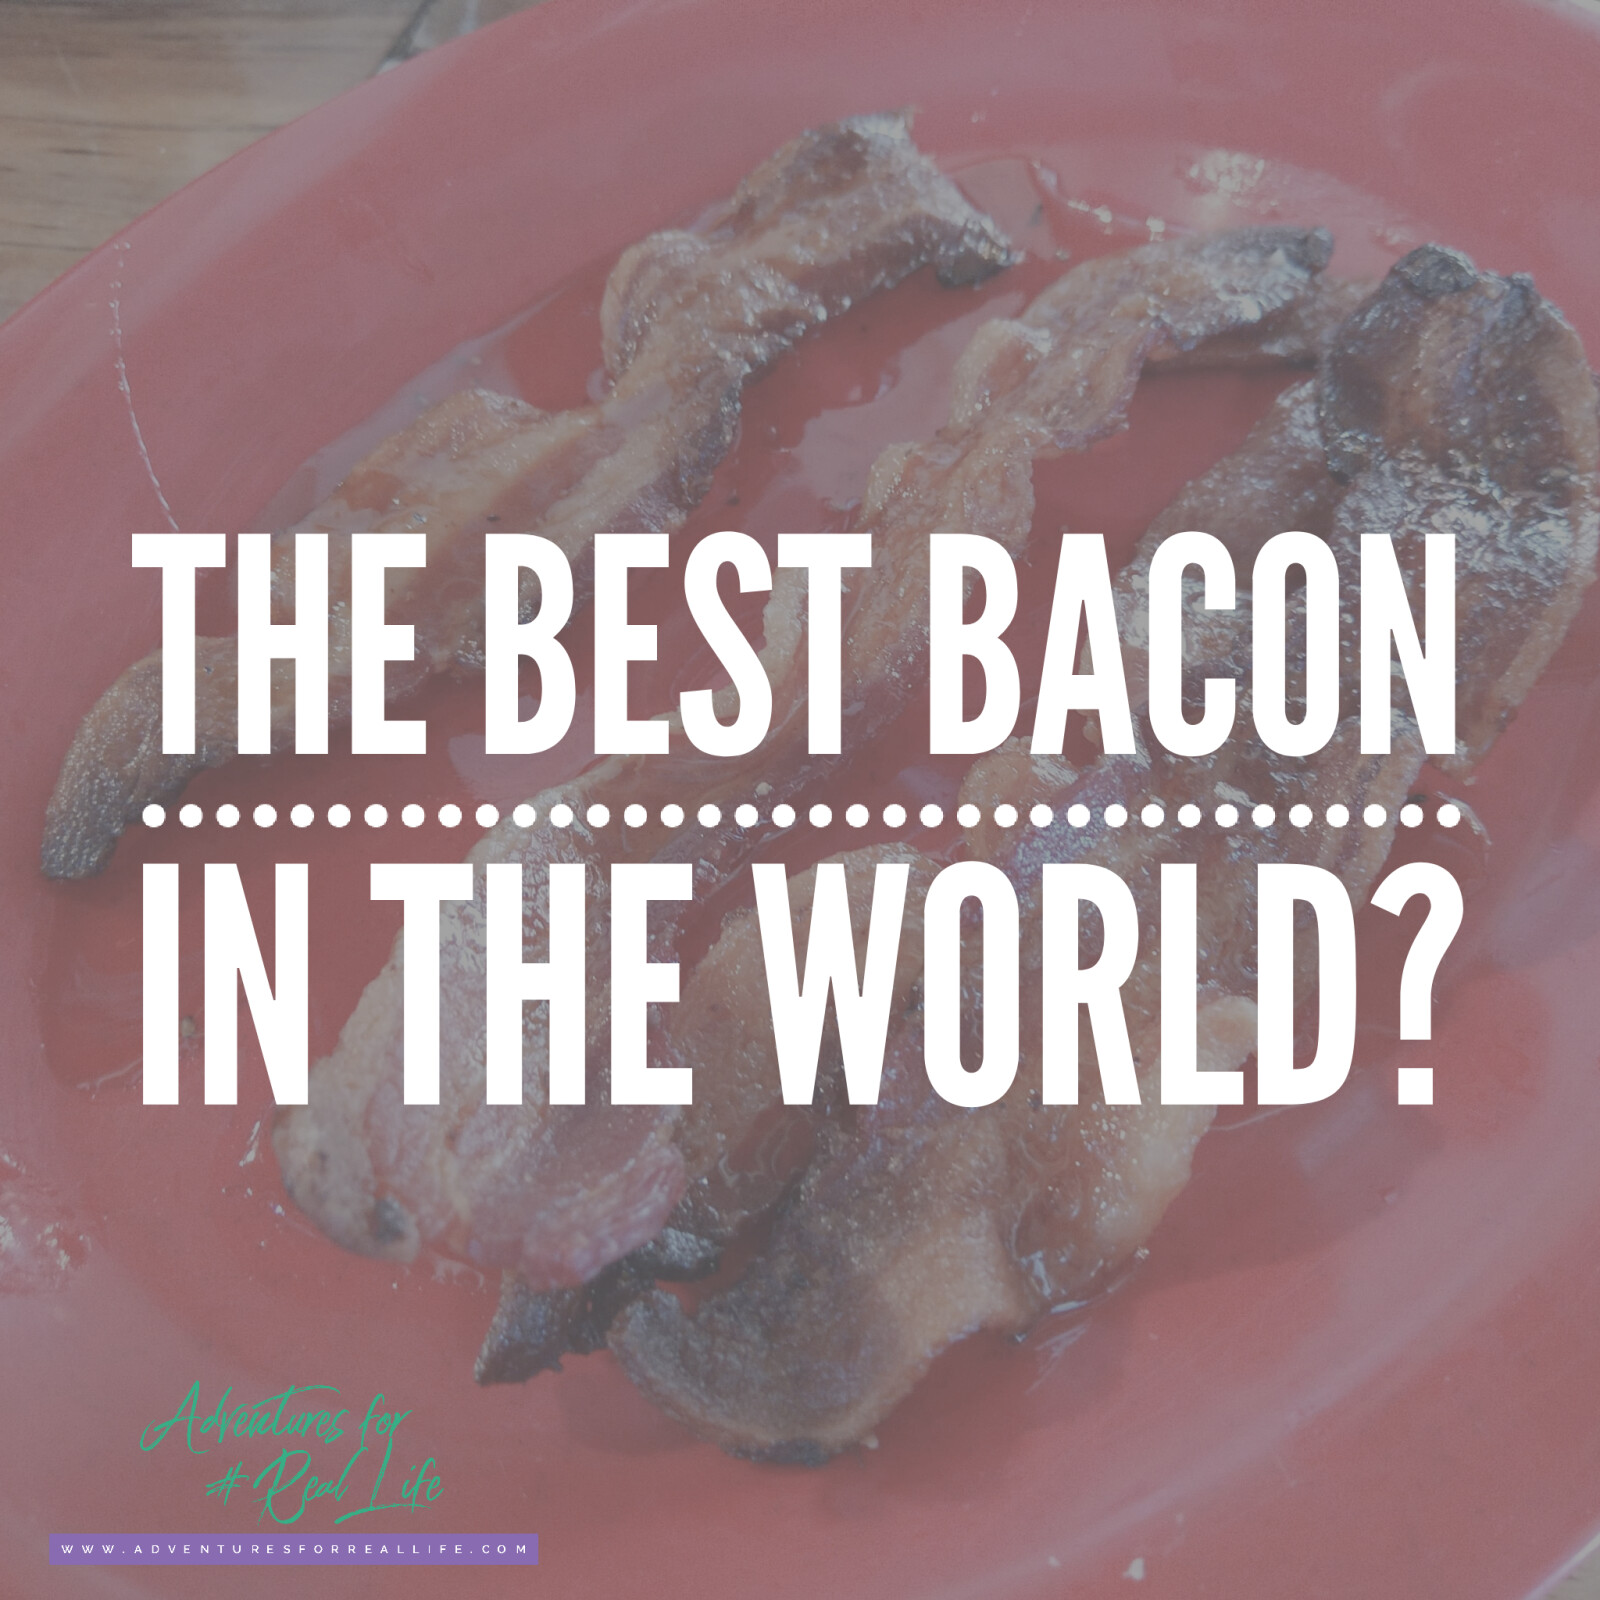 The Best Bacon in the World?